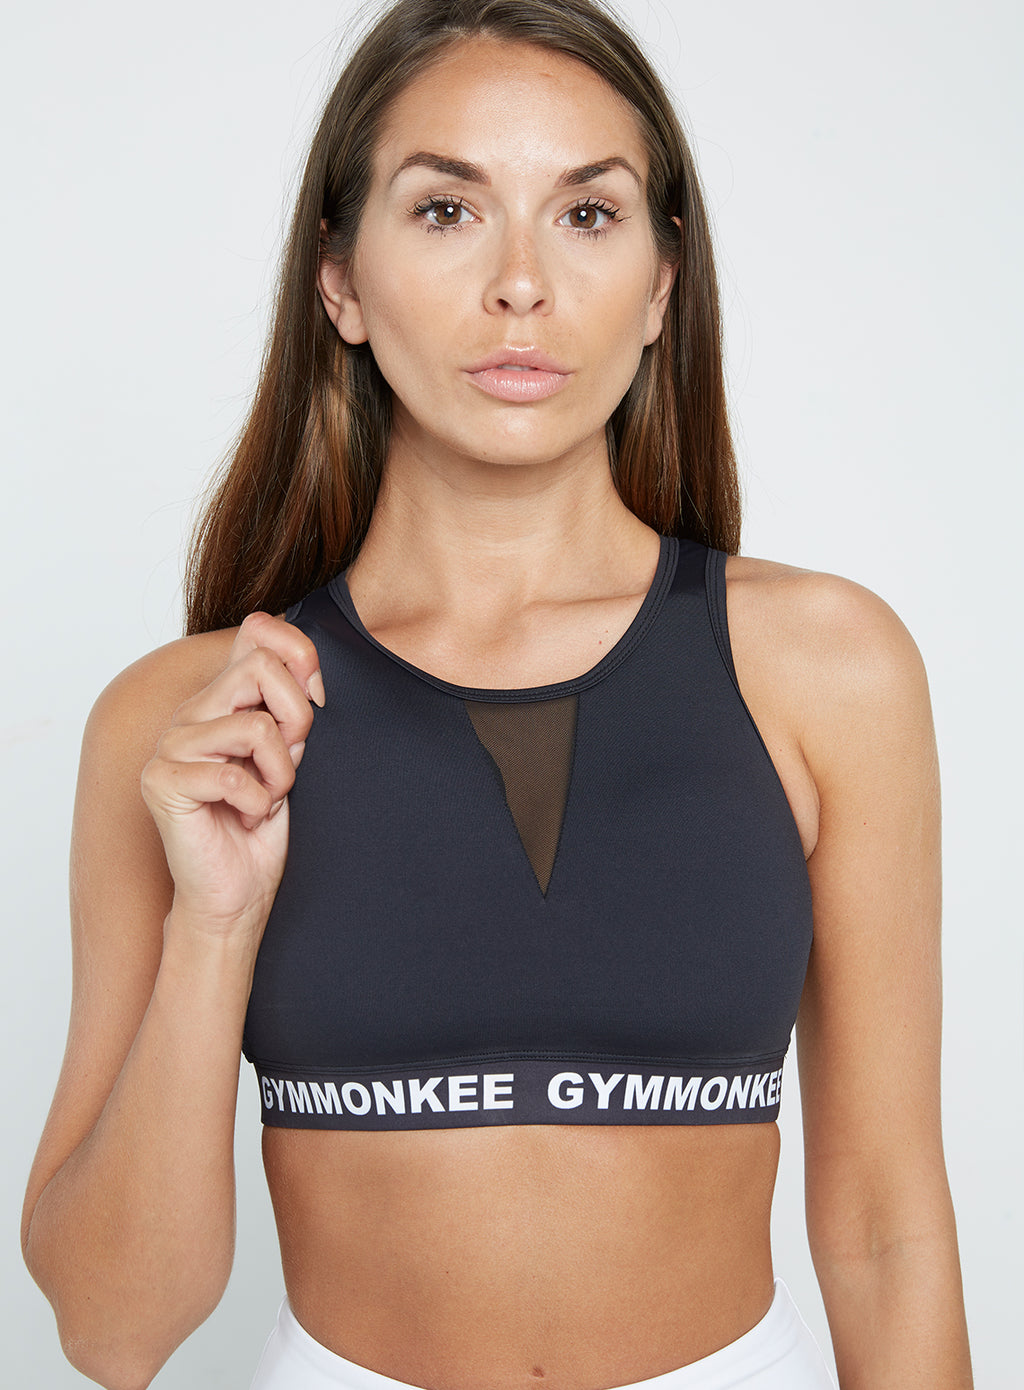 Gym Monkee - Black Sports Bra NECK